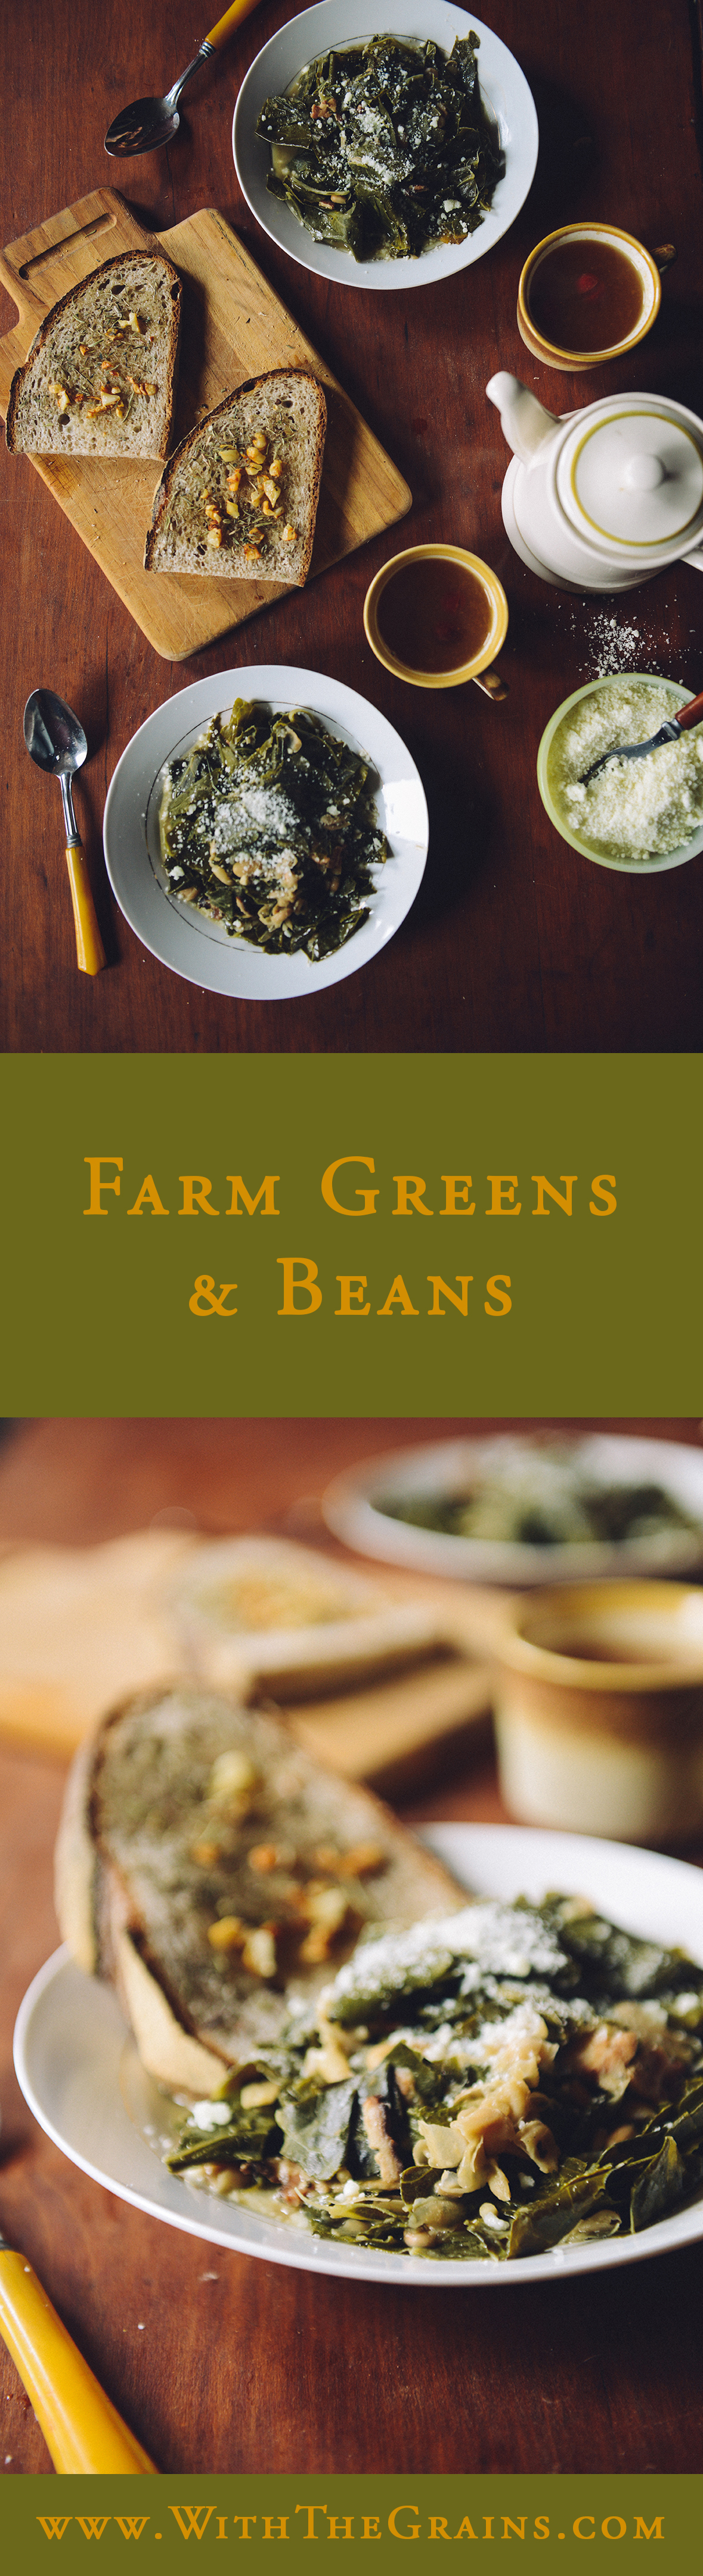 Farm Greens and Beans // www.WithTheGrains.com